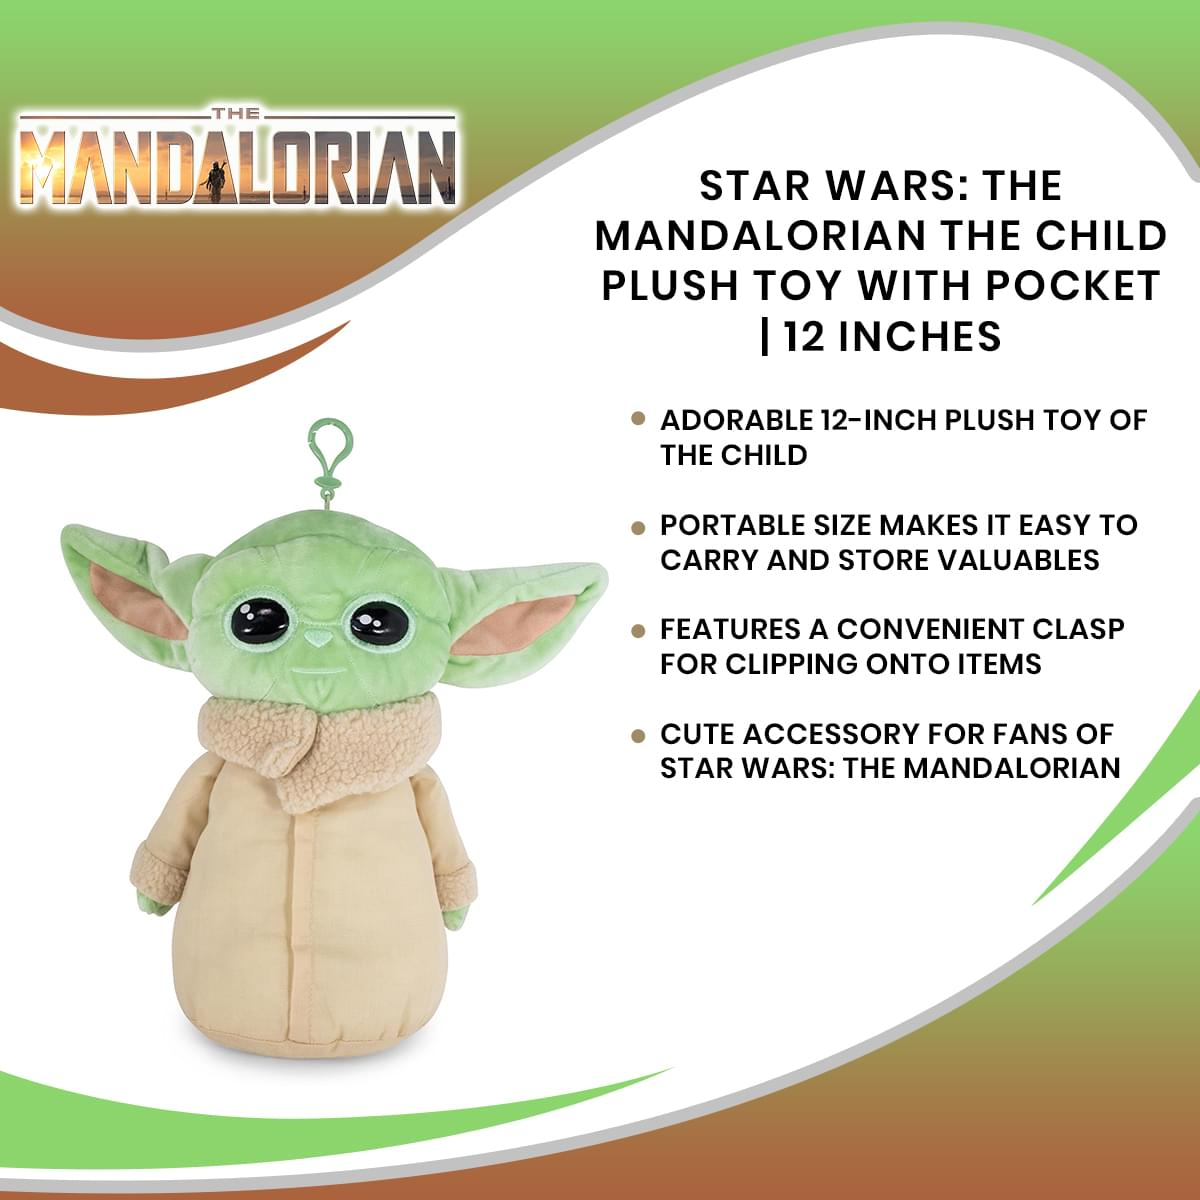 Star Wars: The Mandalorian The Child Plush Toy with Pocket | 12 Inches